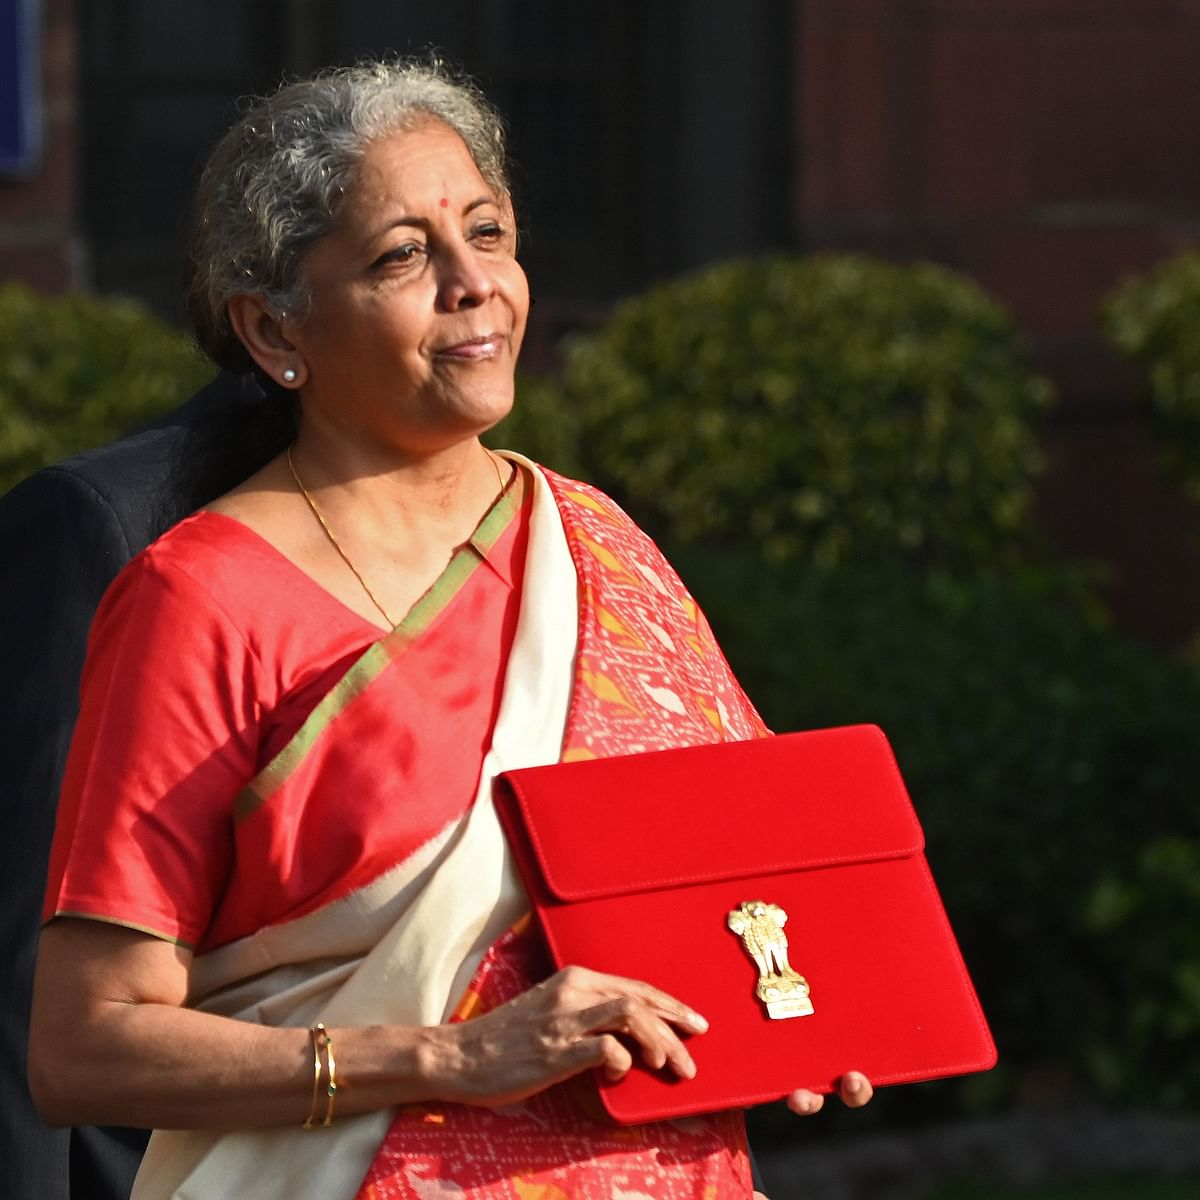 Budget 2021: India's disinvestment plans are positive; the focus should be on implementation